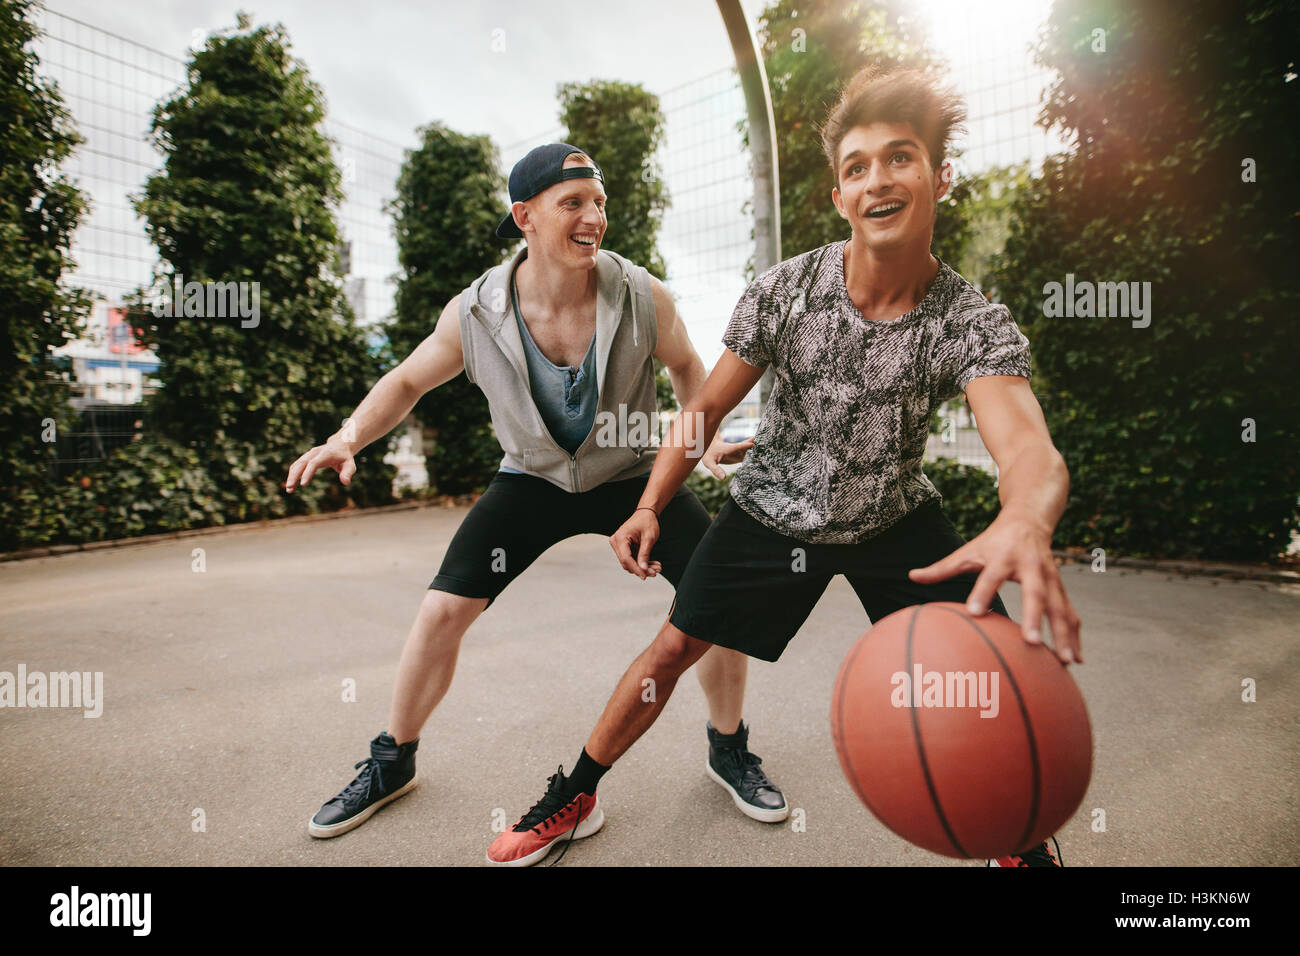 Two young friends playing basketball and having fun. Streetball players having a game of basketball on court outdoors. - Stock Image